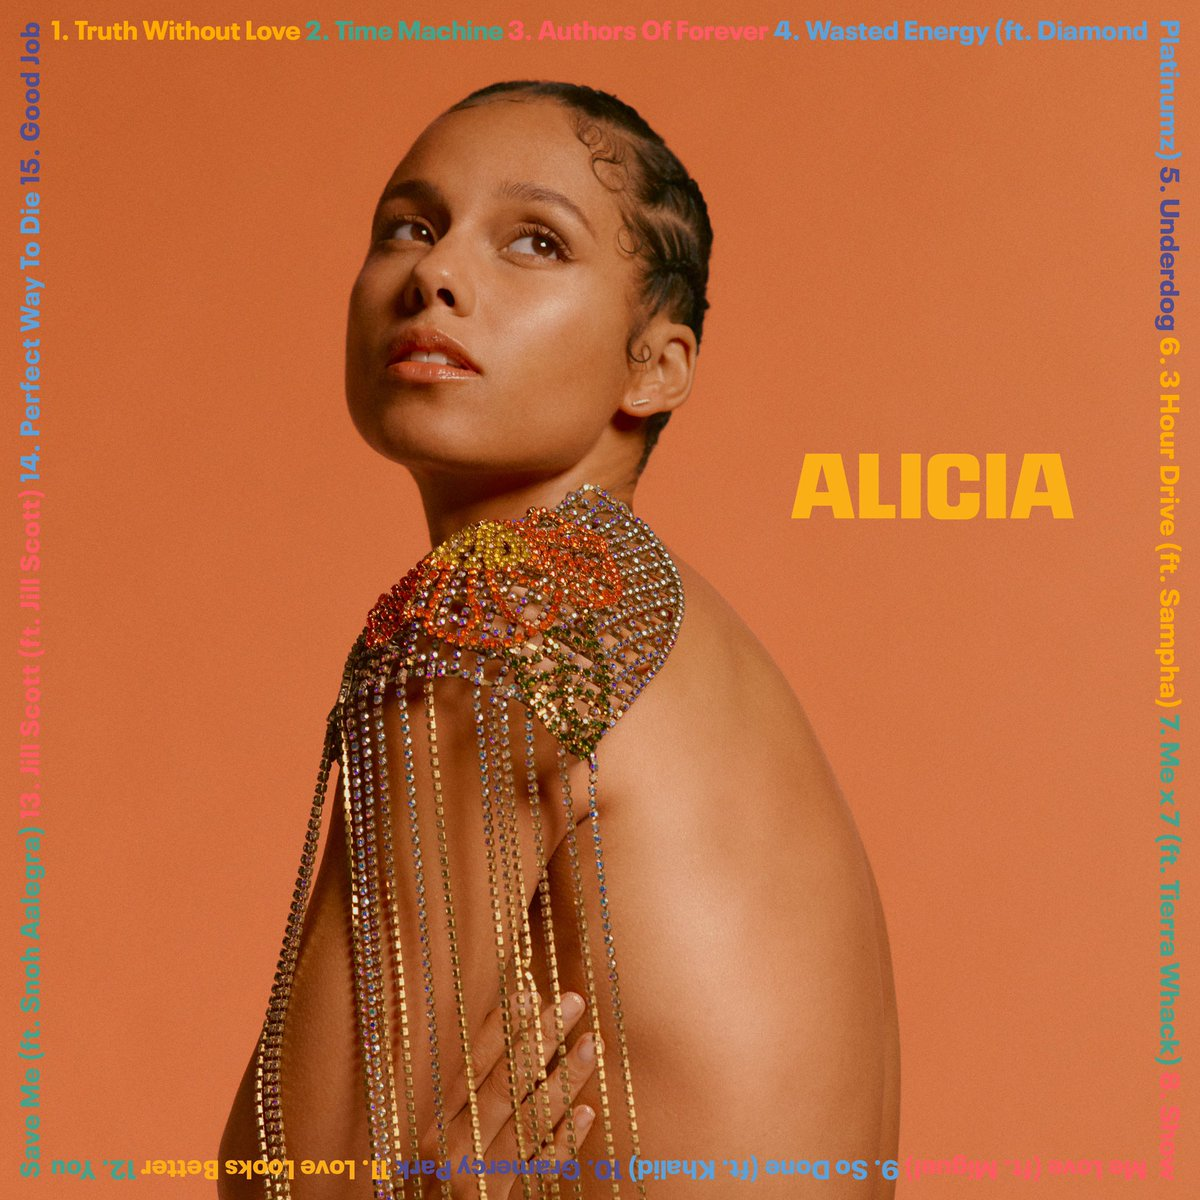 #ALICIA is out right now!! I'm grateful to share all the different sides of me with you. I'm grateful you love me as I am! Press play and let the magic begin 💜💜💜🥳🥳🥳 ⁣ ⁣ And tell me your favorites!! I can't wait to hear 😘😘😘